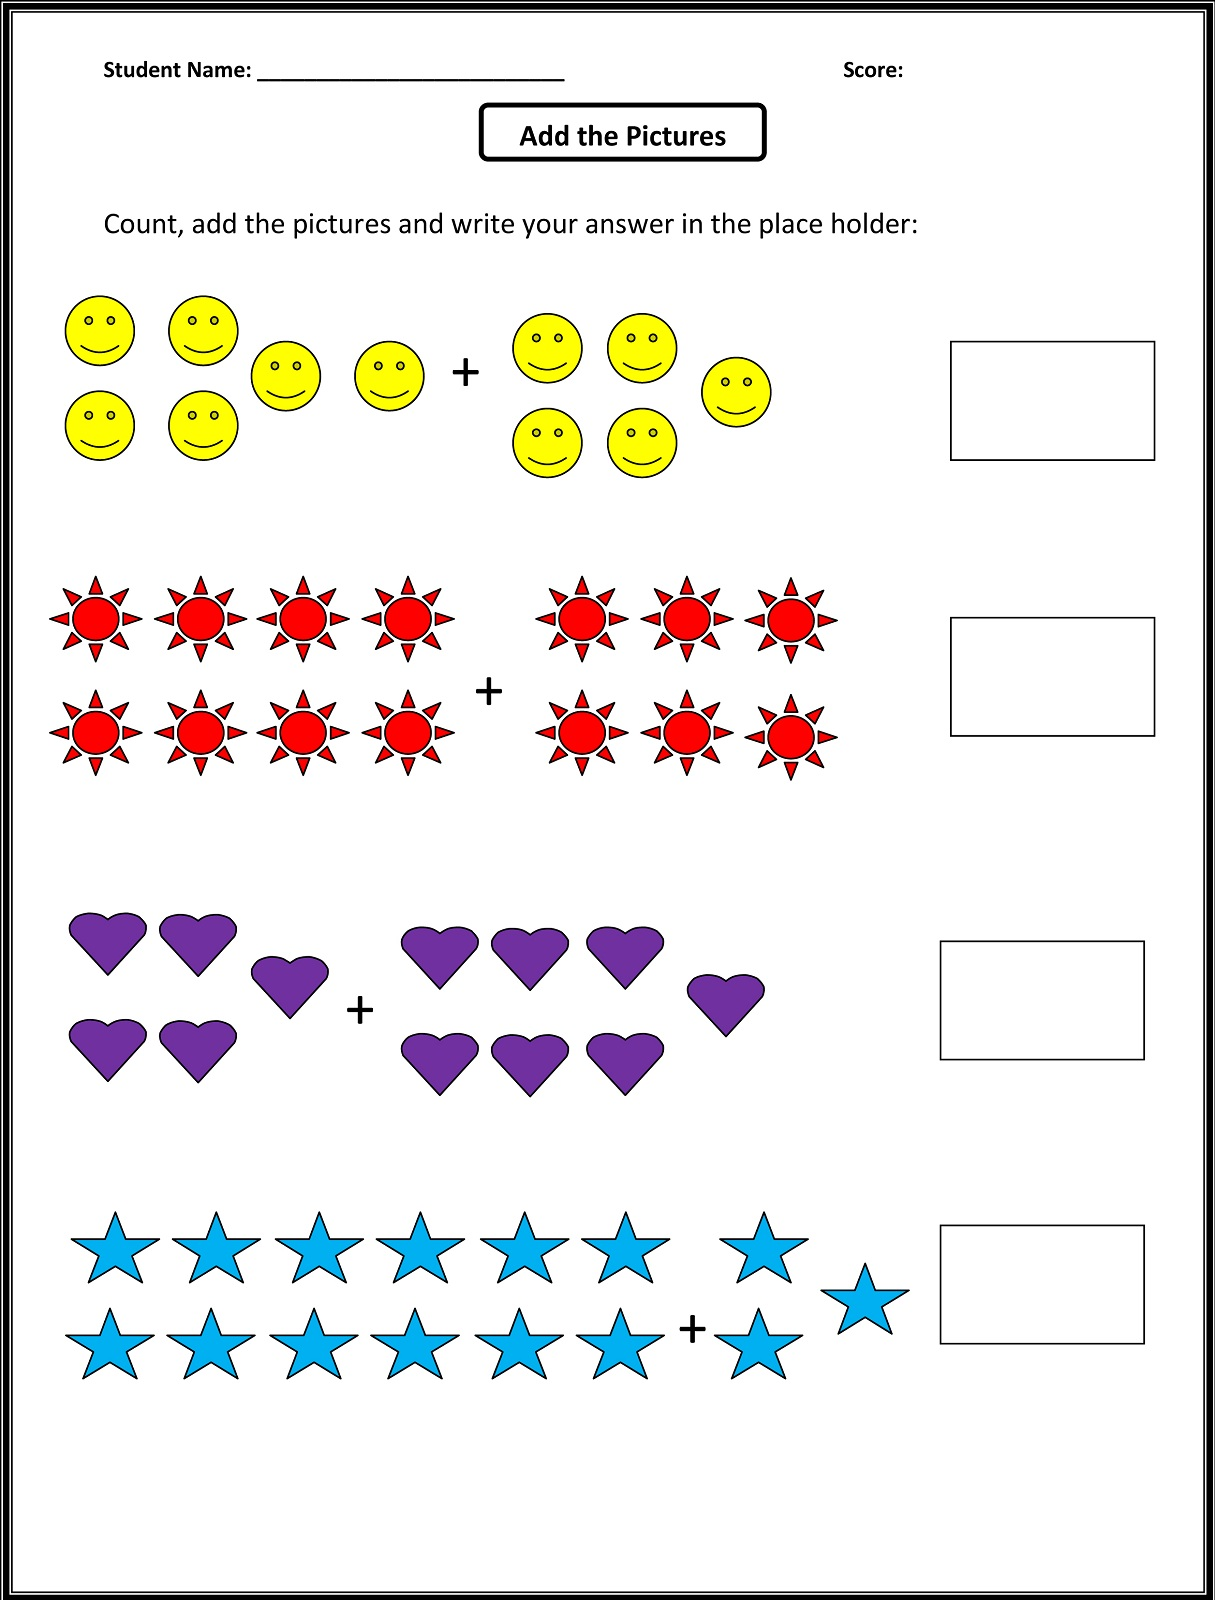 Worksheets for 1st Grade Math – Math Worksheets for 1st Grade Printable